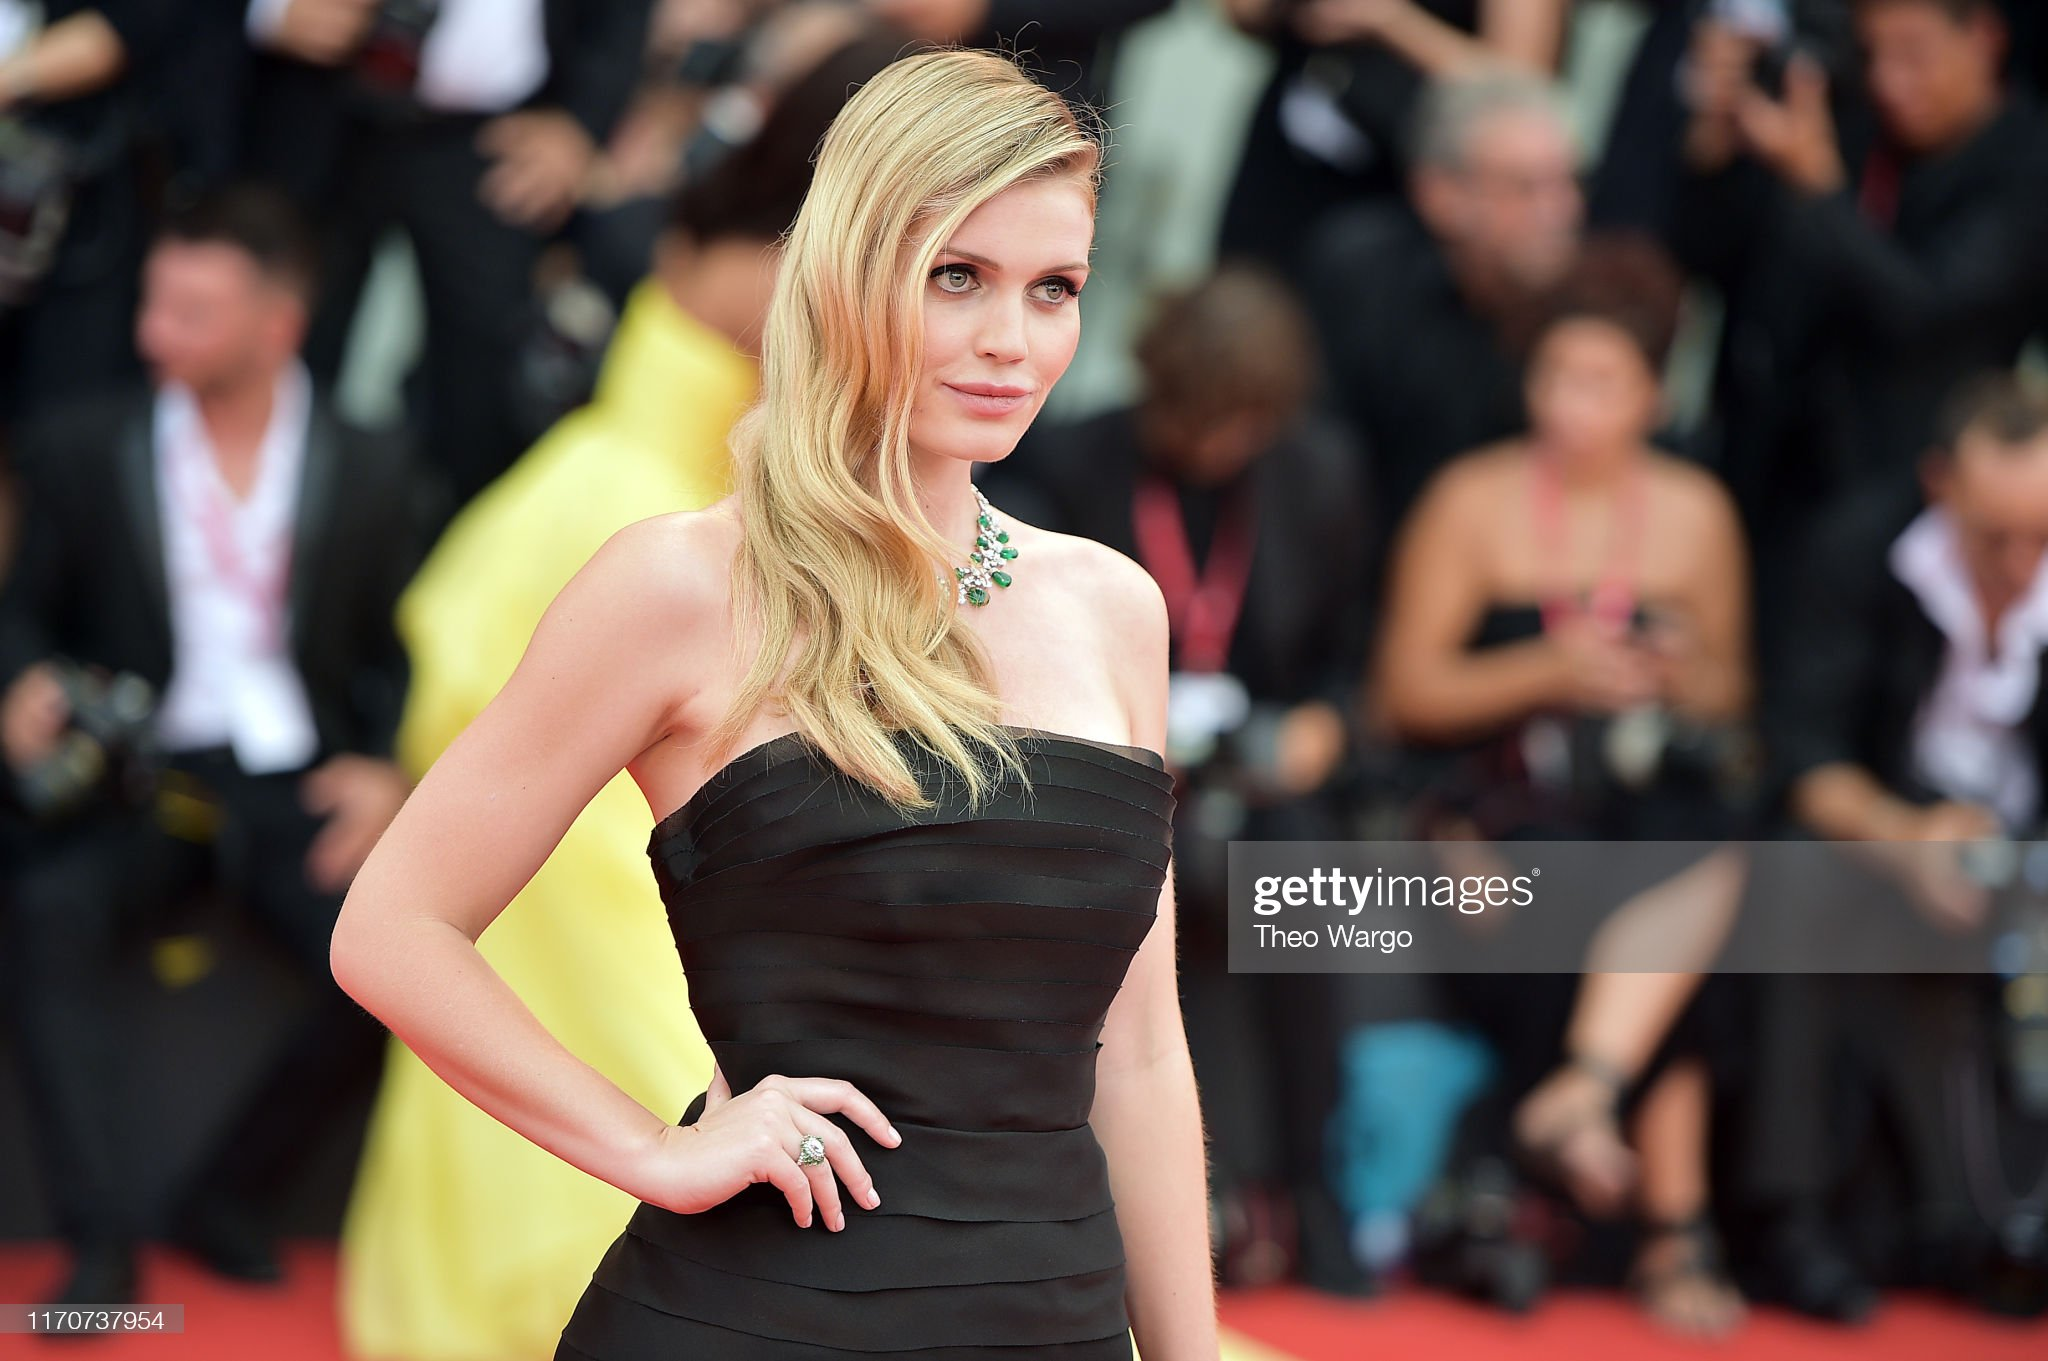 https://media.gettyimages.com/photos/lady-kitty-spencer-walks-the-red-carpet-ahead-of-the-opening-ceremony-picture-id1170737954?s=2048x2048